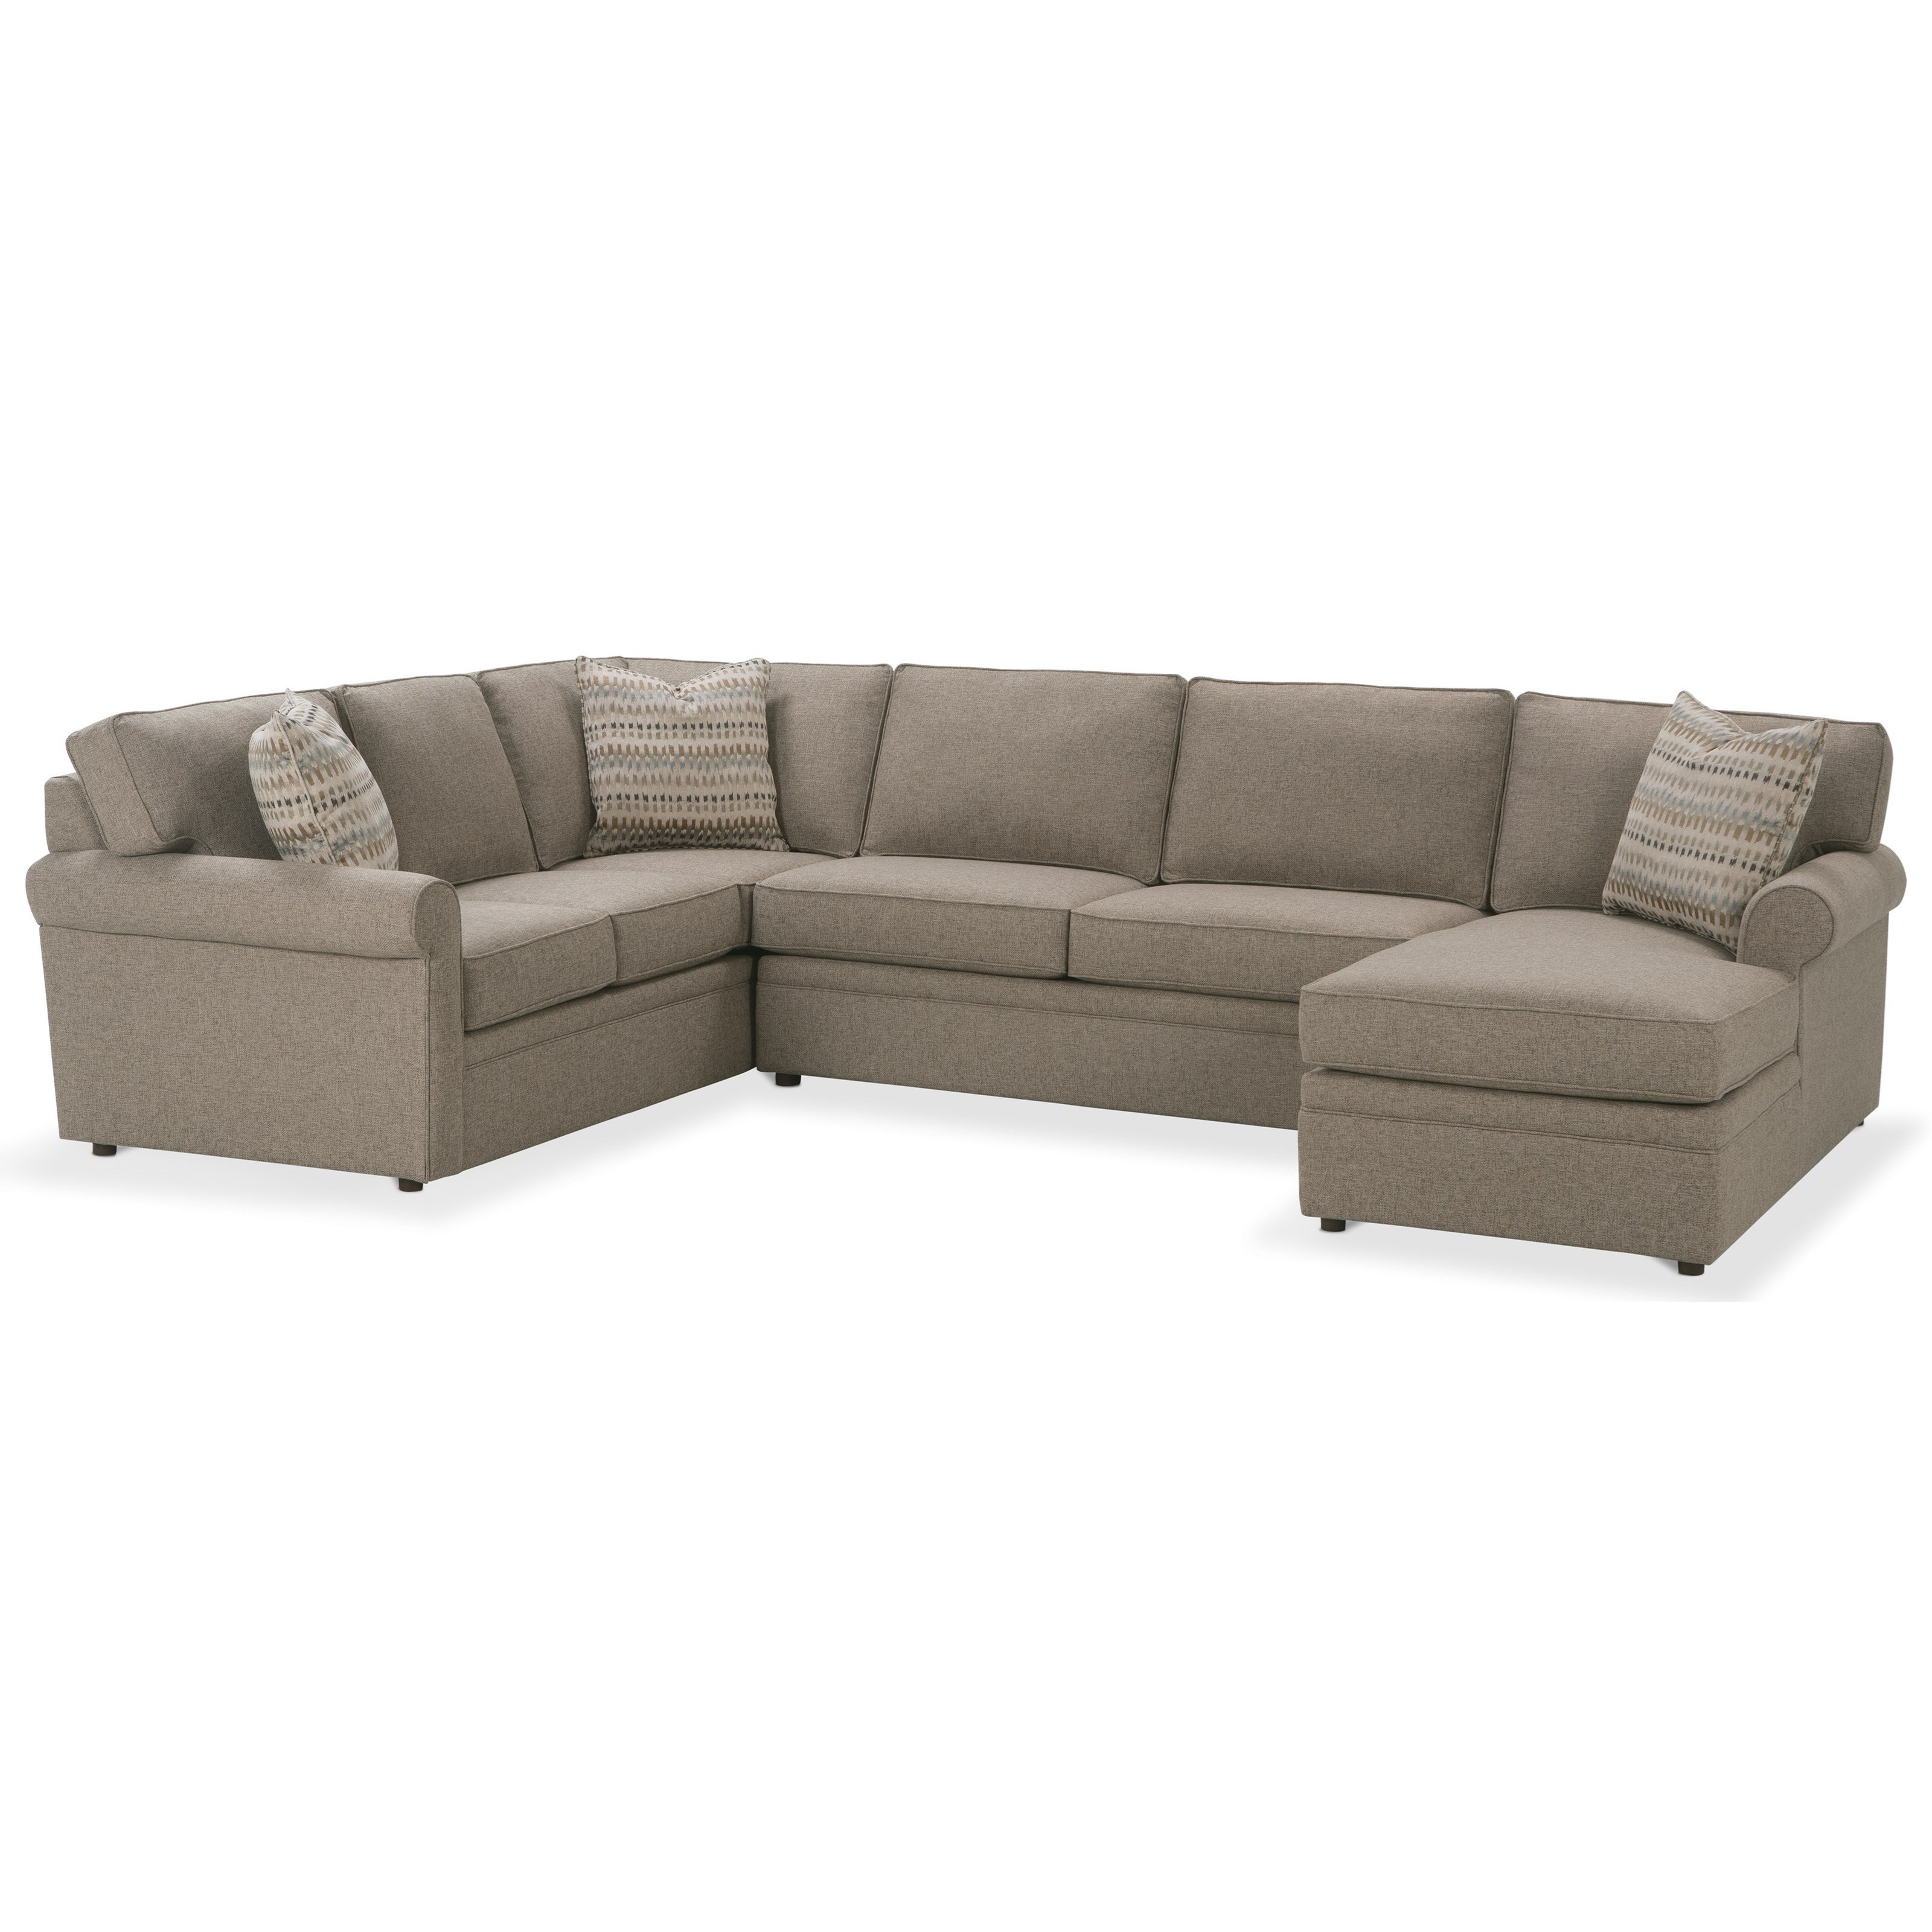 Brentwood Sectional Sofa by Rowe at Malouf Furniture Co.